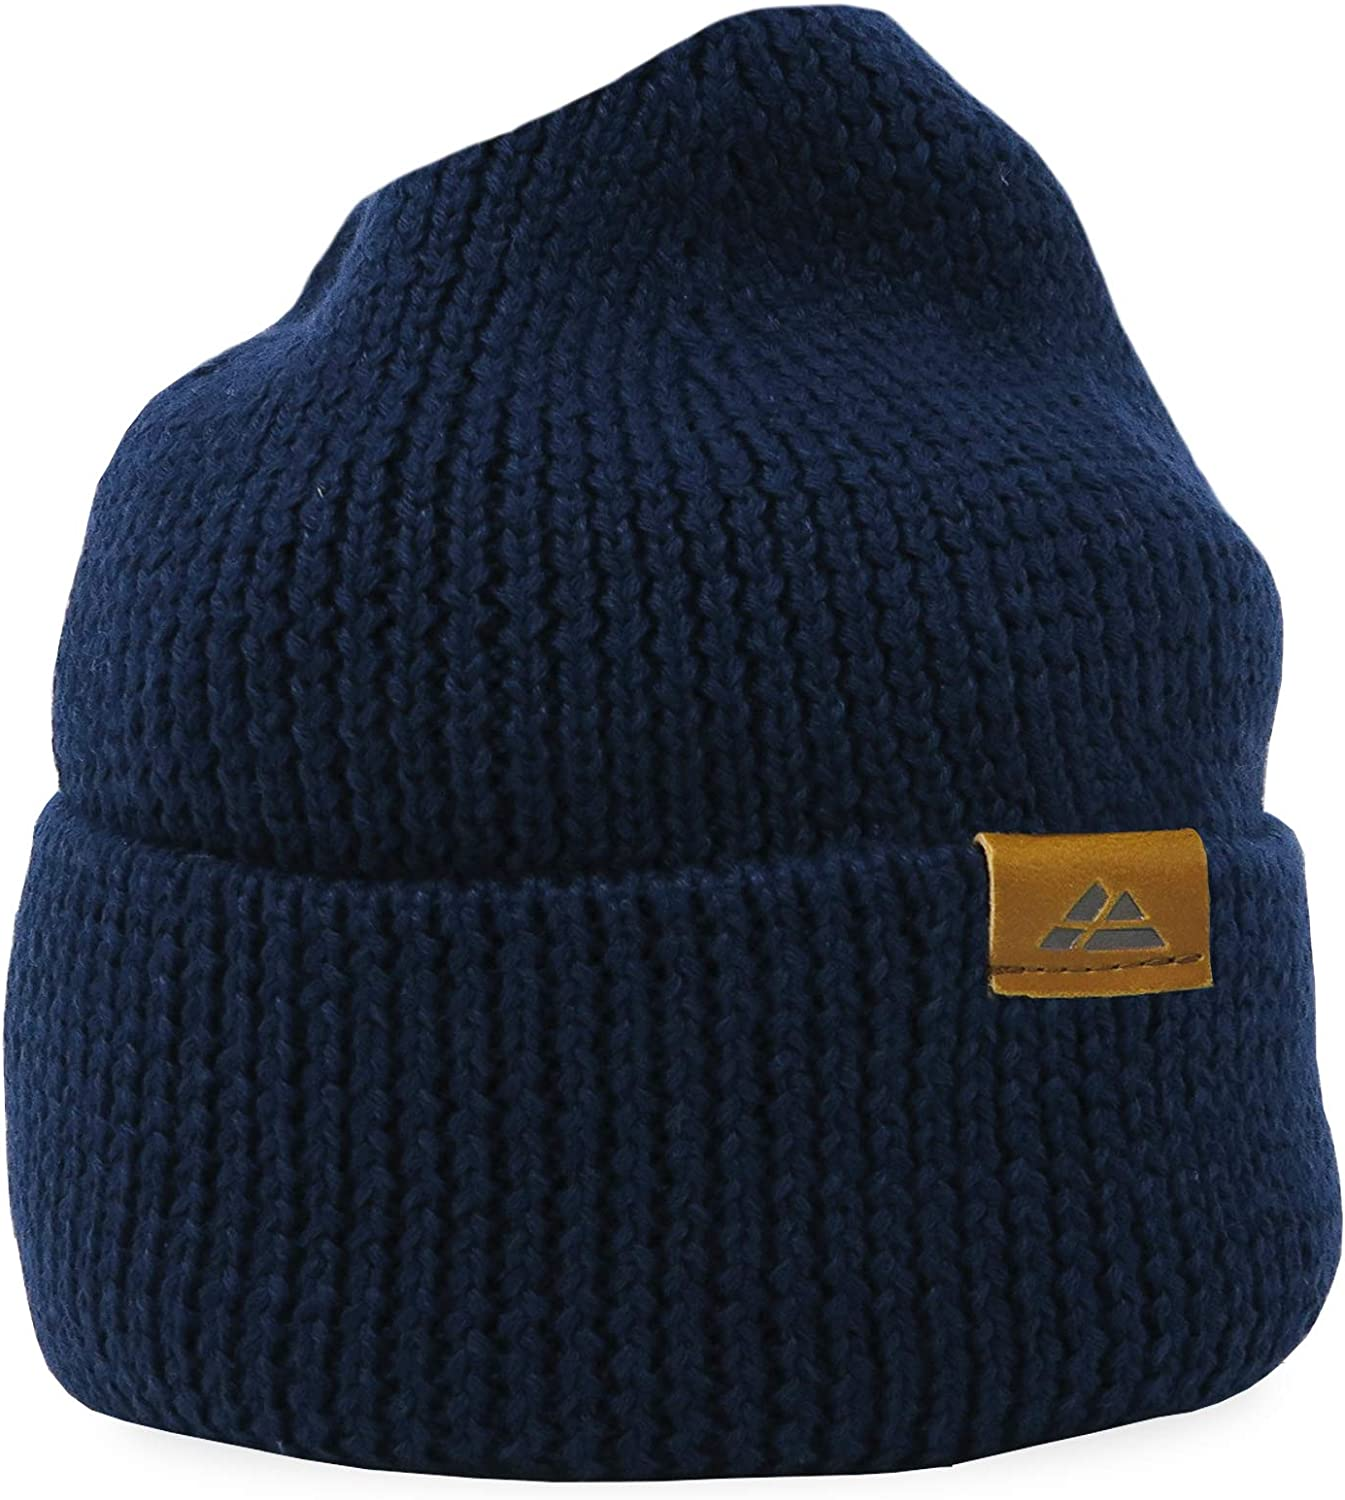 DANISH ENDURANCE Classic Beanie for Men /& Women Unisex Cuffed Plain Knit Hat Merino Wool /& Recycled Materials Blend